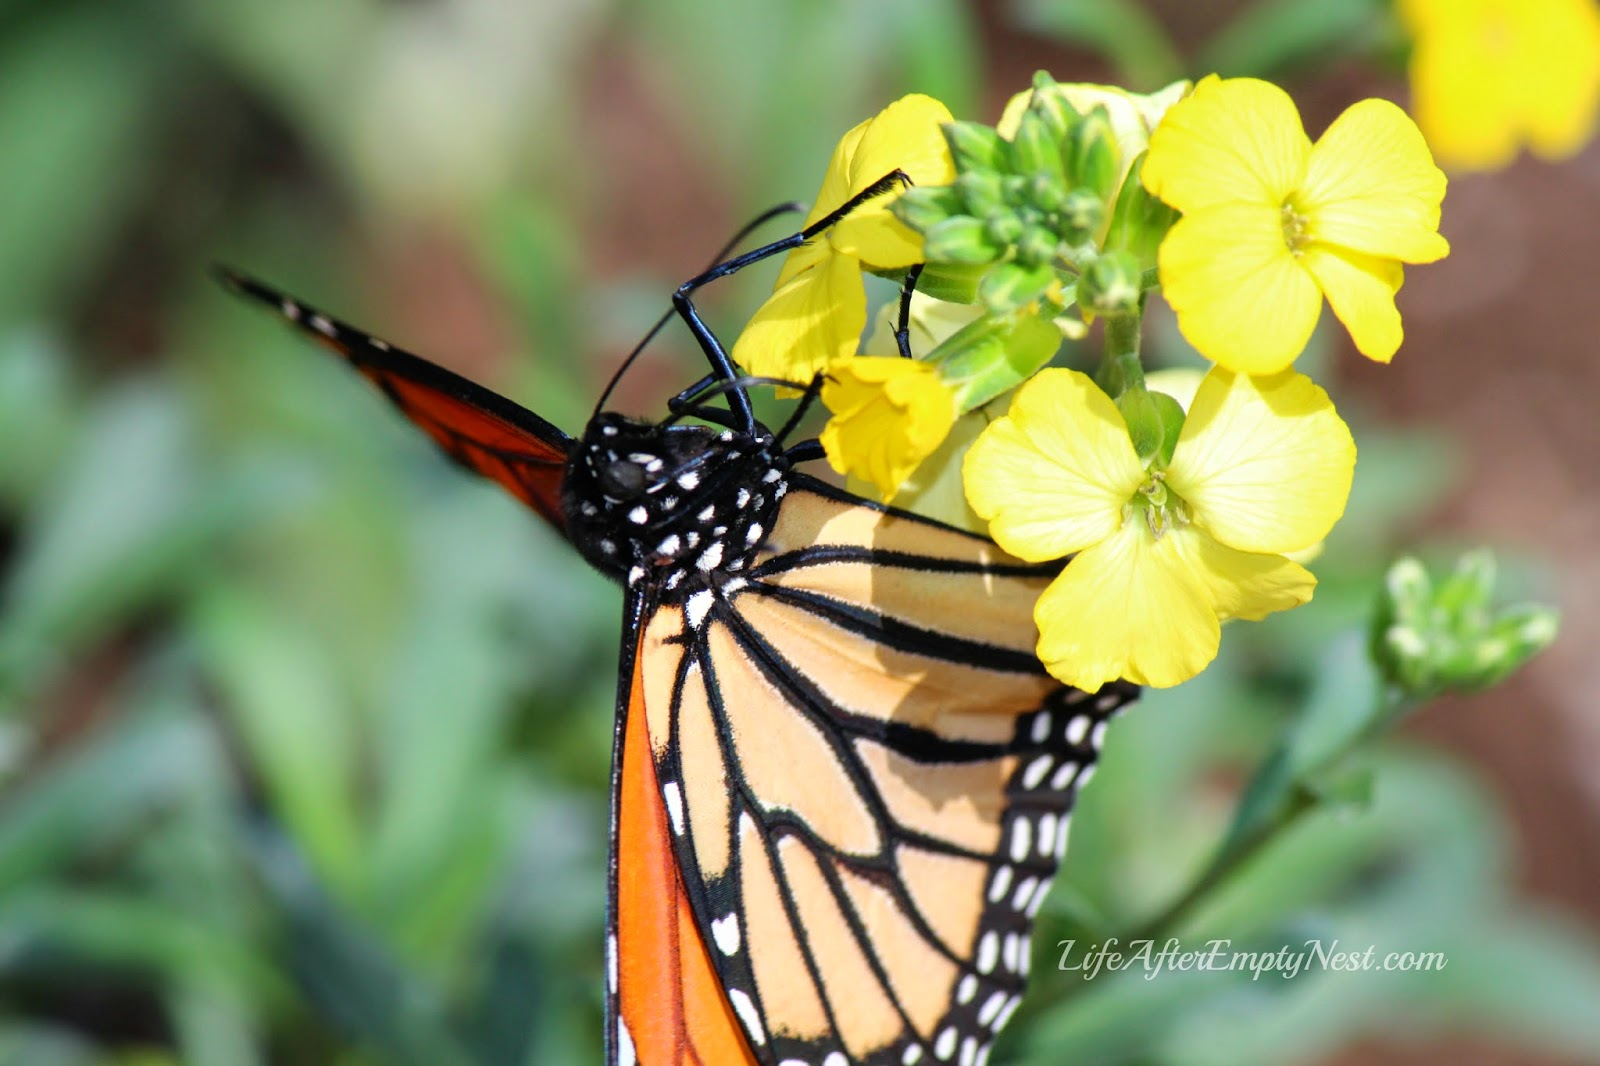 Life is all about taking the time to discover the miracles in each new day. #monarch